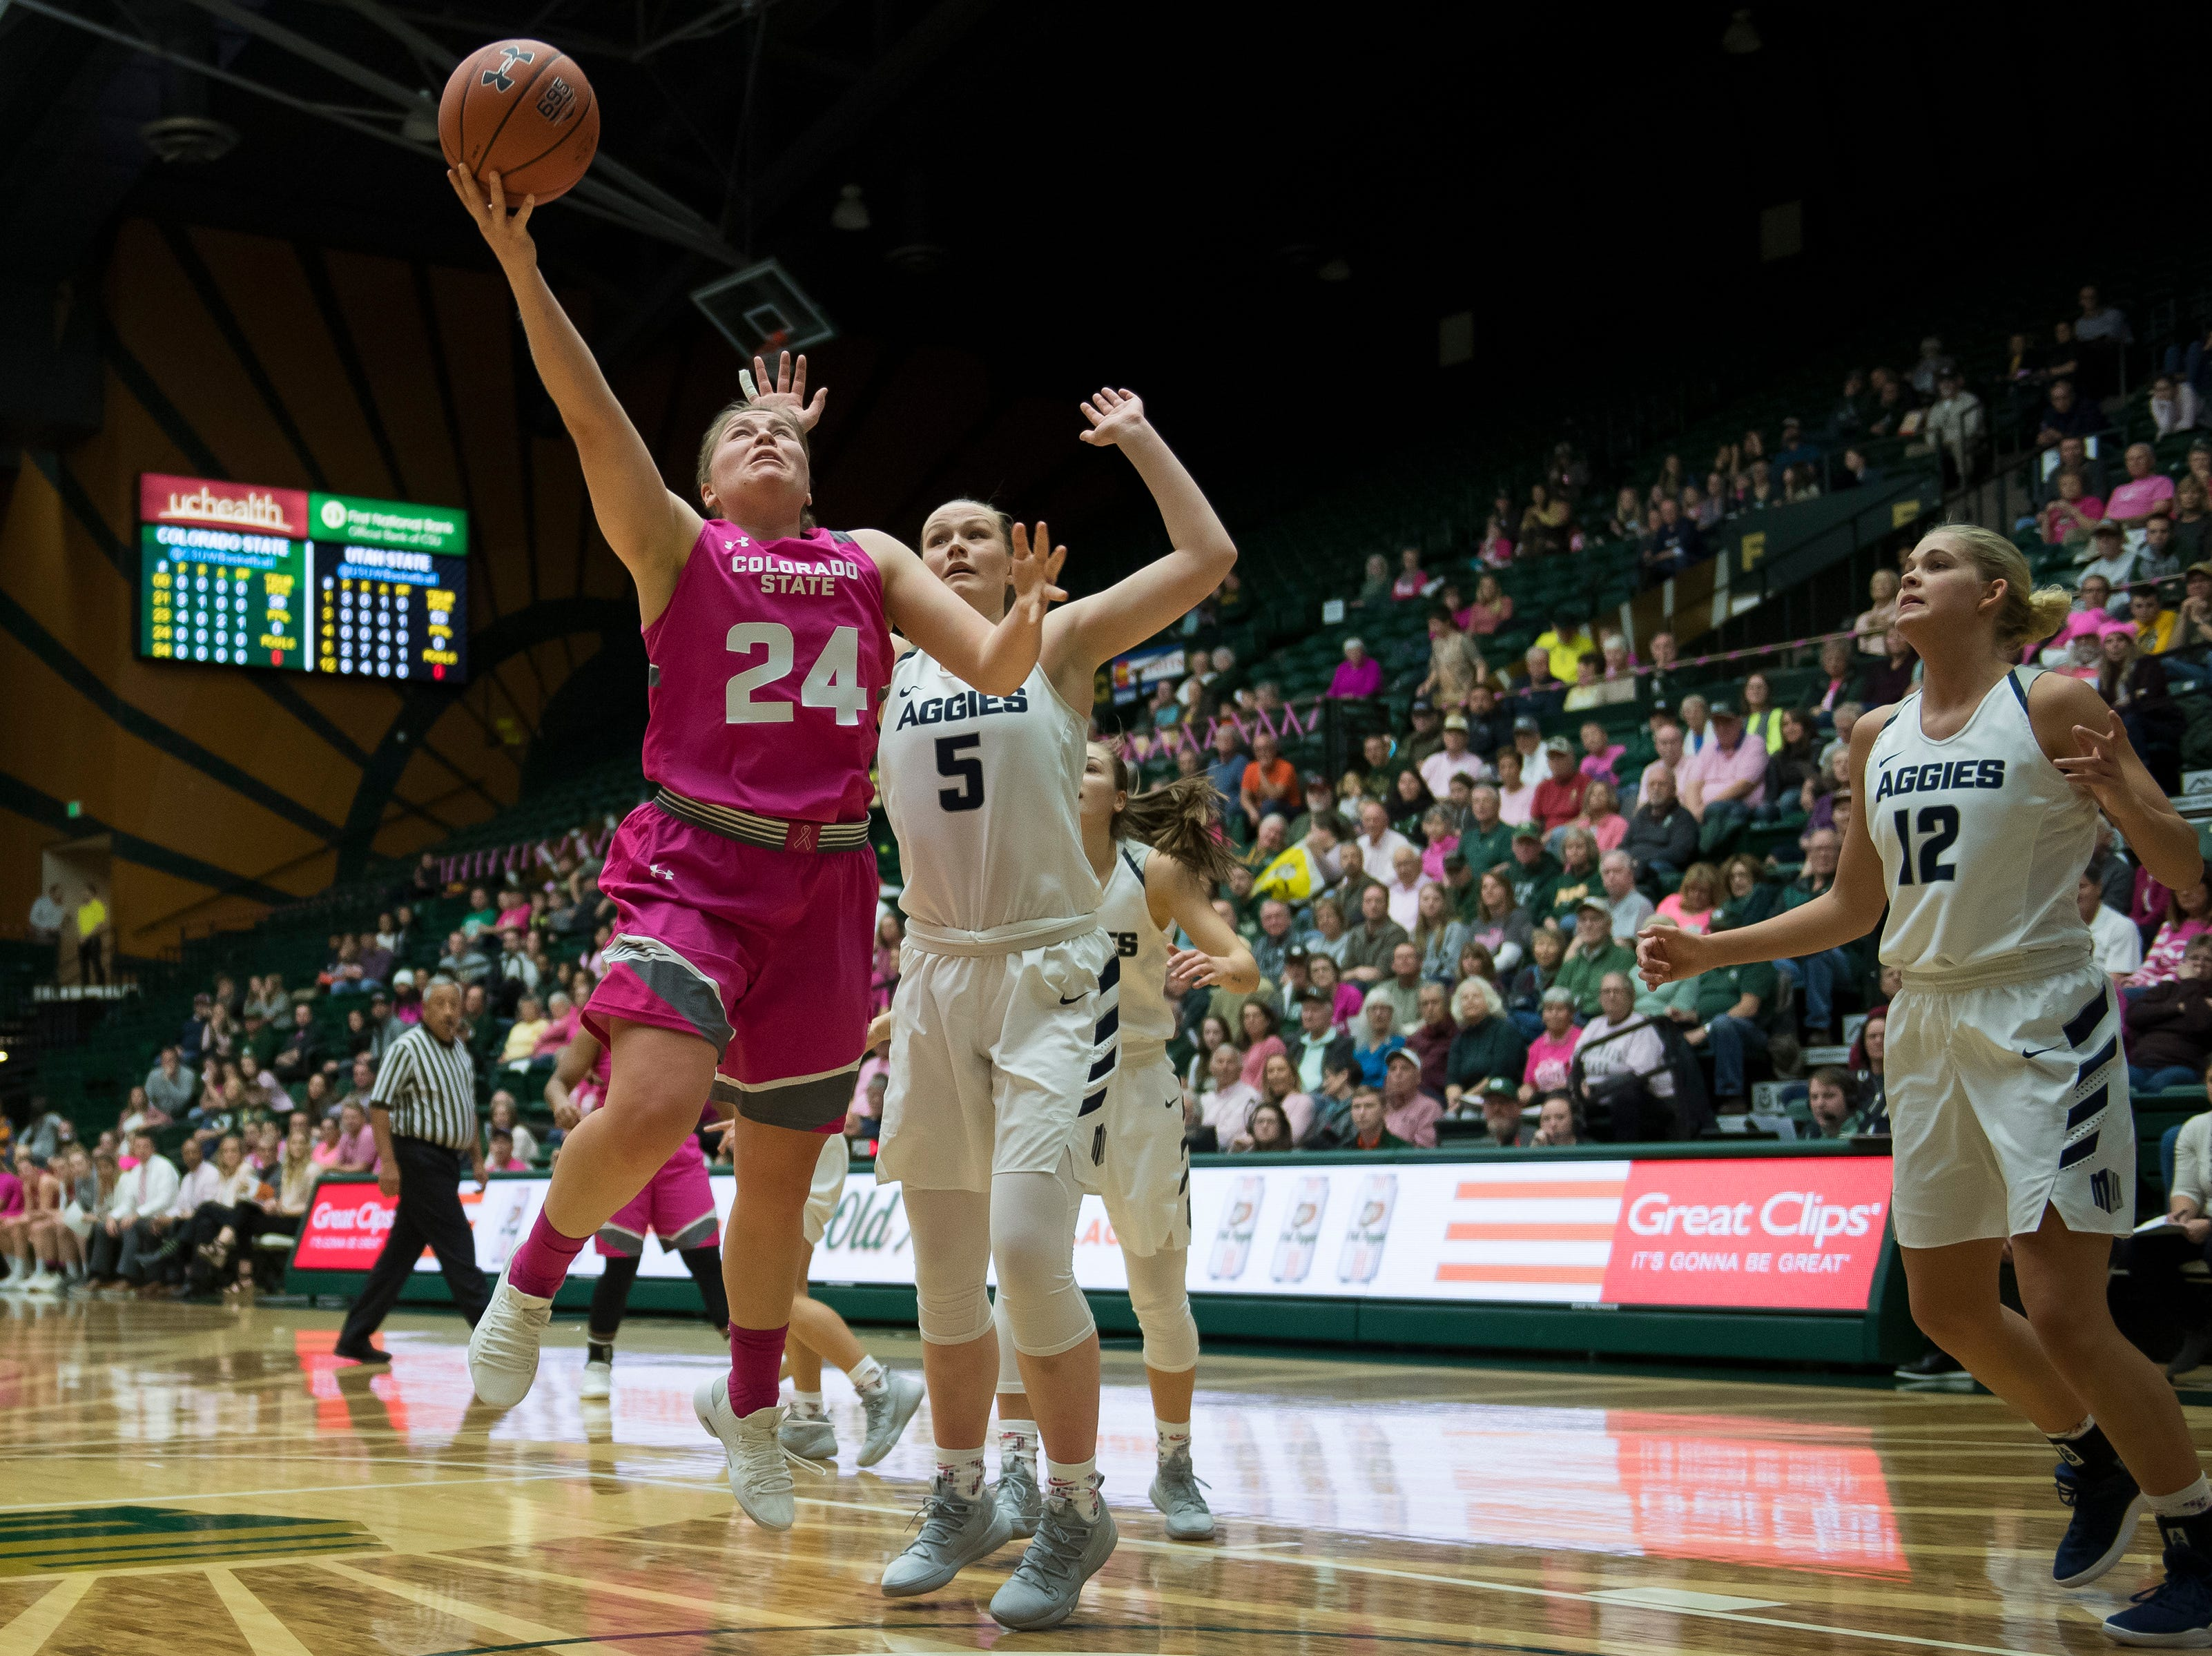 Colorado State University junior guard Mollie Mounsey (24) goes for a layup past Utah State defenders on Saturday, Jan. 19, 2019, at Moby Arena in Fort Collins, Colo.